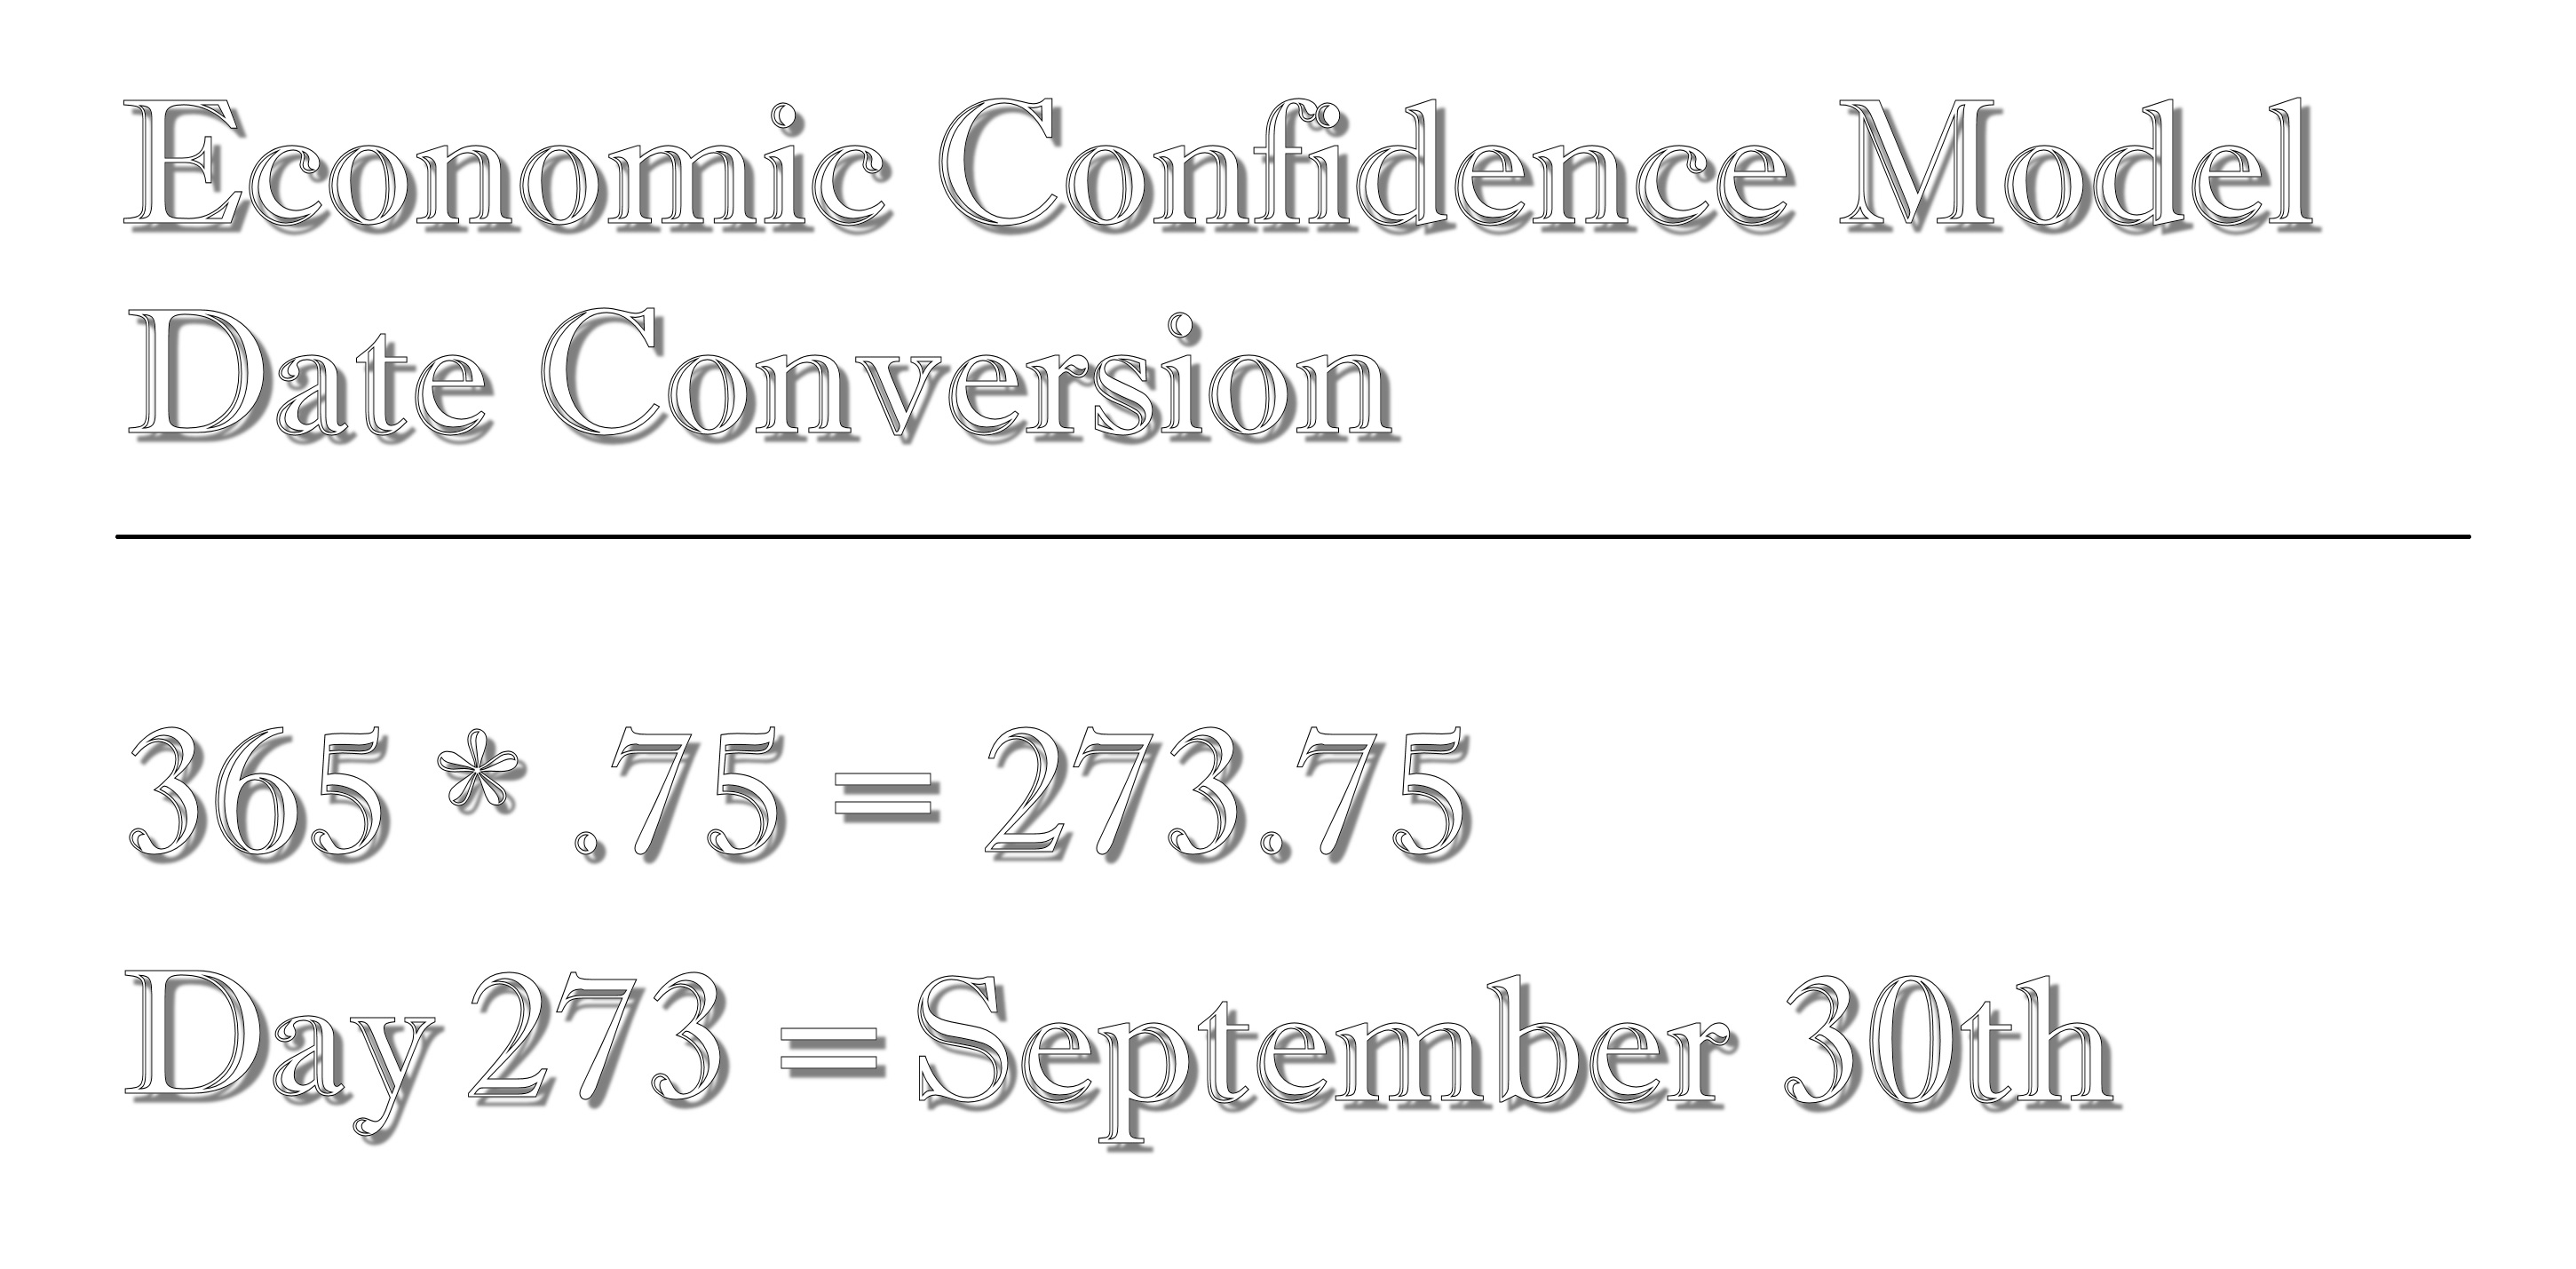 1 ECM Date Conversion